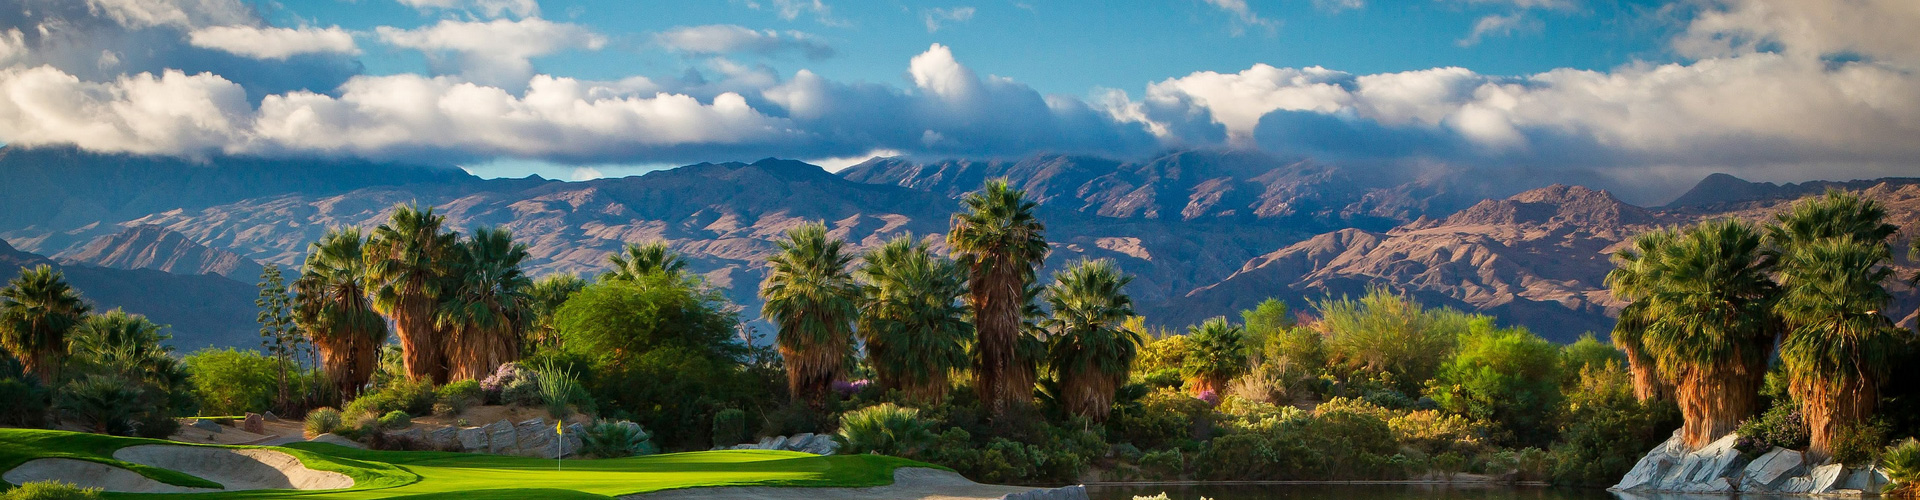 Rancho Mirage Racquet Club